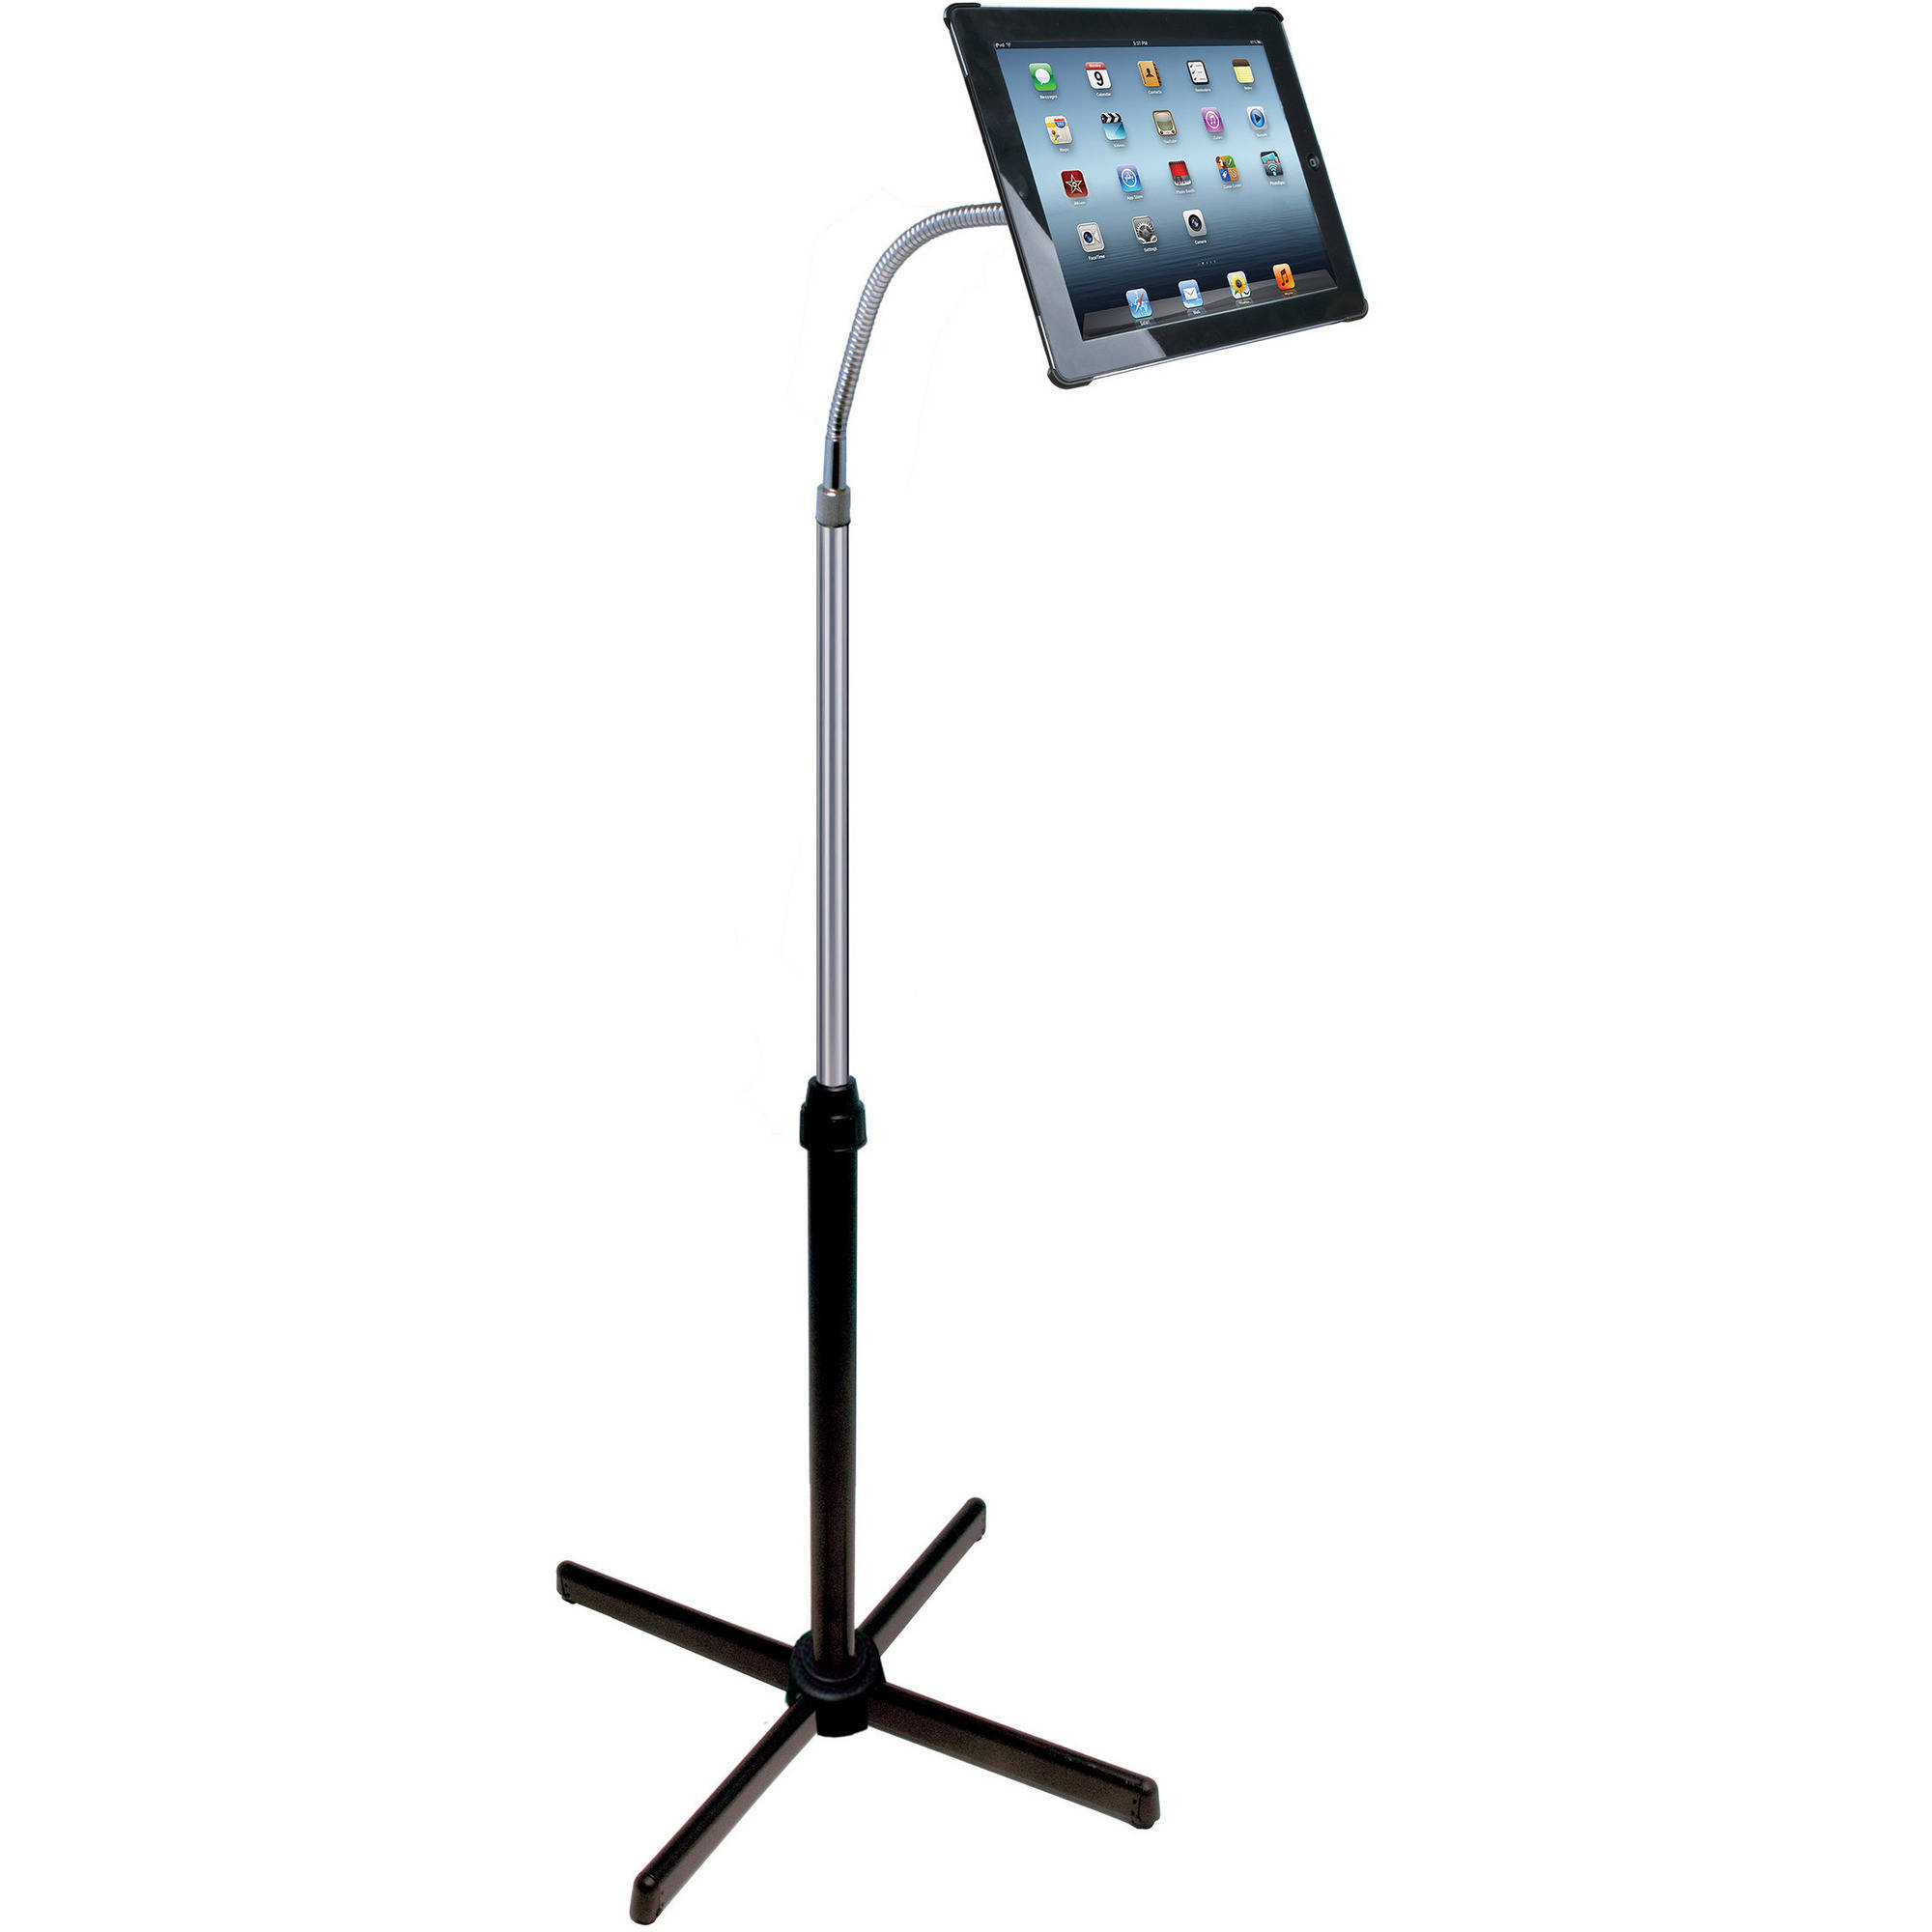 cta digital apple ipad 234 gooseneck floor stand image - Ipad Floor Stand